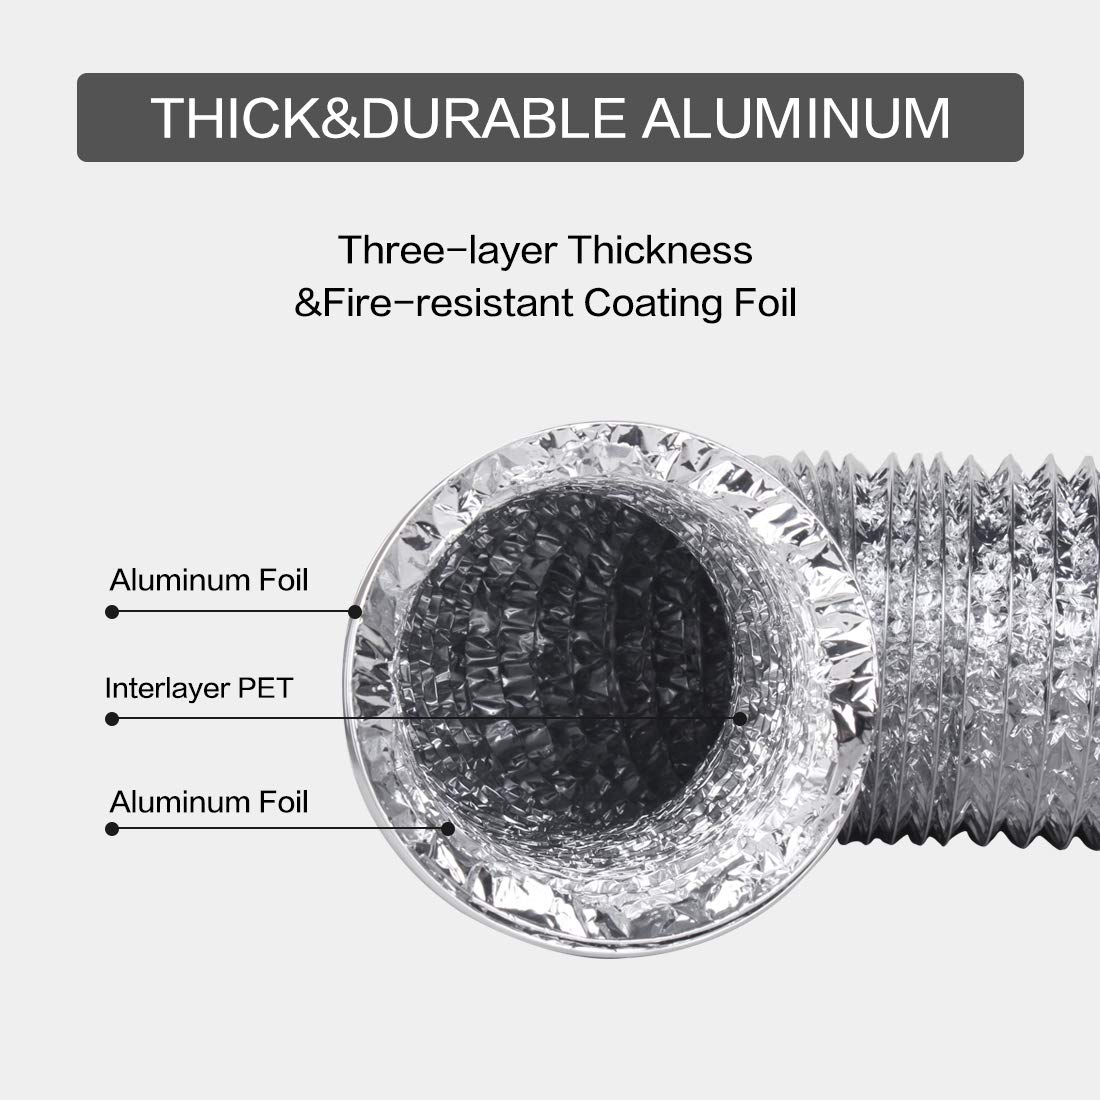 Duct Hose 5 Inch 16 Feet Non-Insulated Flexible Air Aluminum Foil Ducting Dryer Vent Hose with 2 Screw Stainless Steel Clamps Great for HVAC Duct, Air Duct: Industrial & Scientific